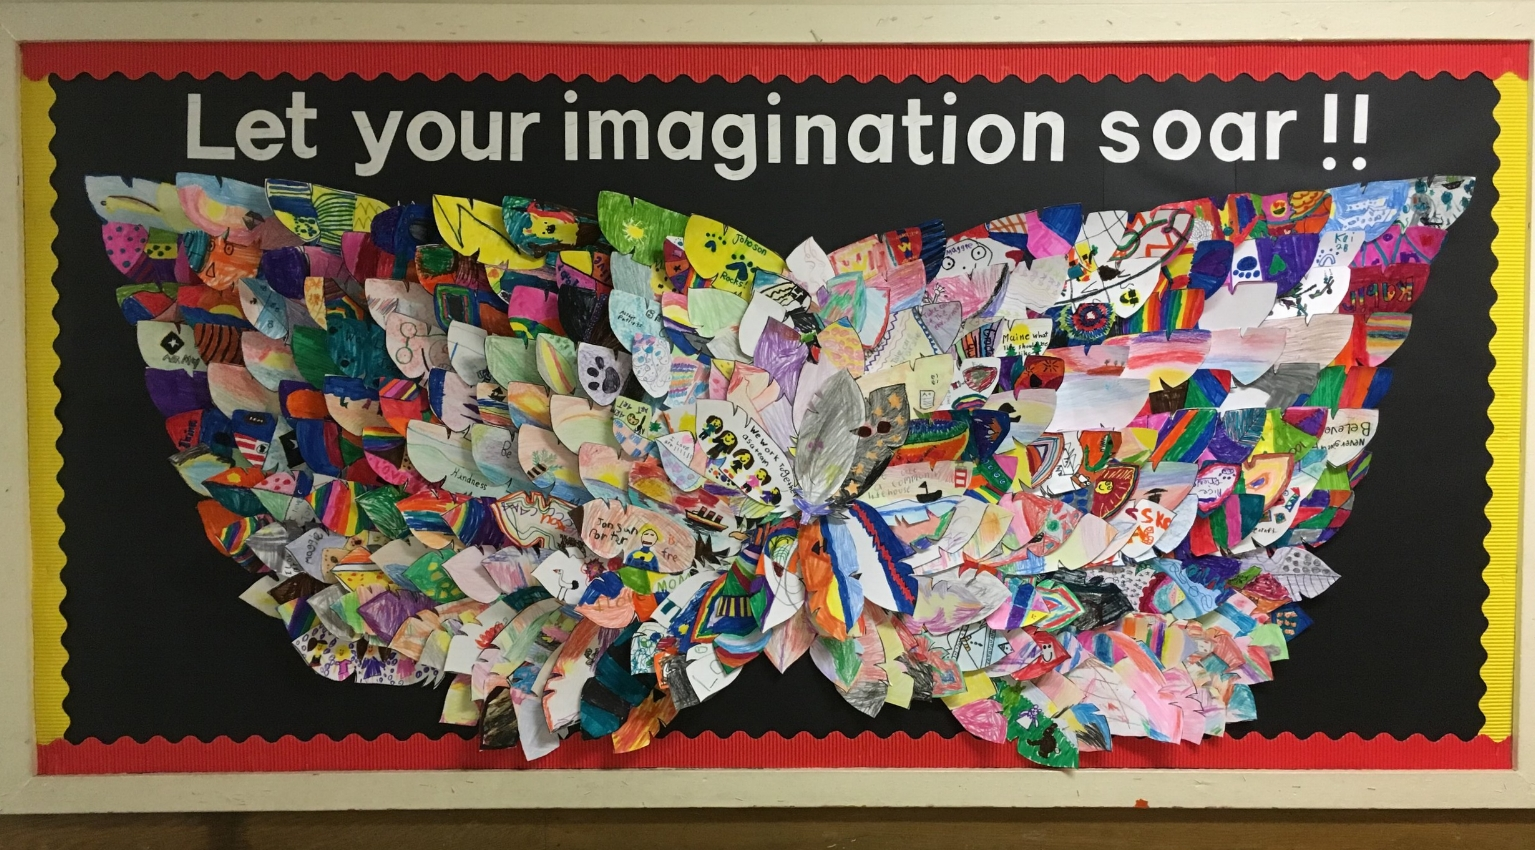 Created by all students at Johnson Elementary School